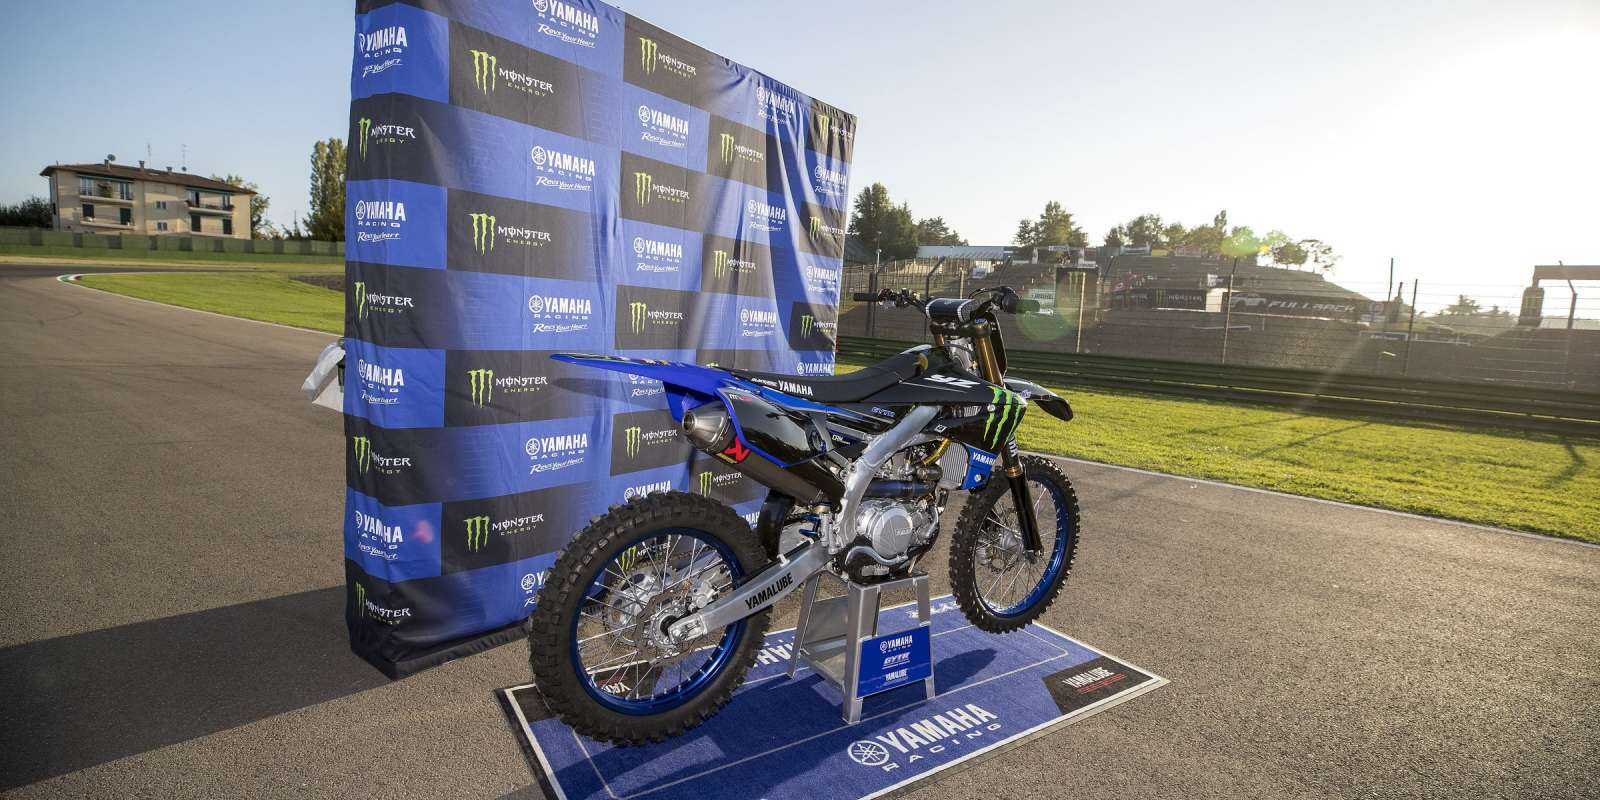 Atmosphere from the 2018 Monster Energy MXGP announcement